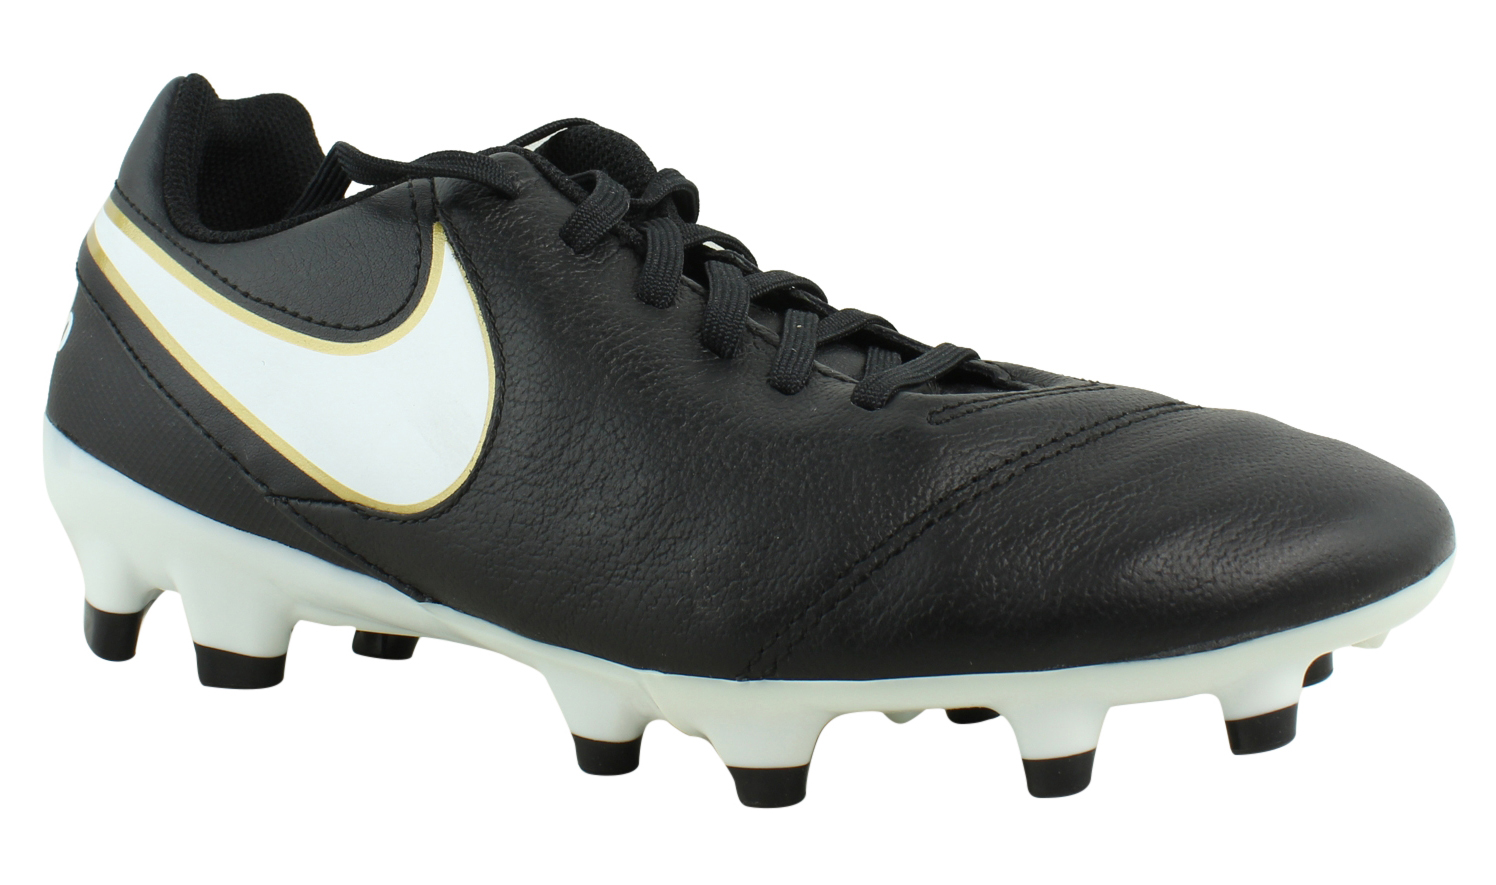 Image is loading Nike-Womens-Tiempo-Genio-Ii-Black-Soccer-Shoes- 84951a410f